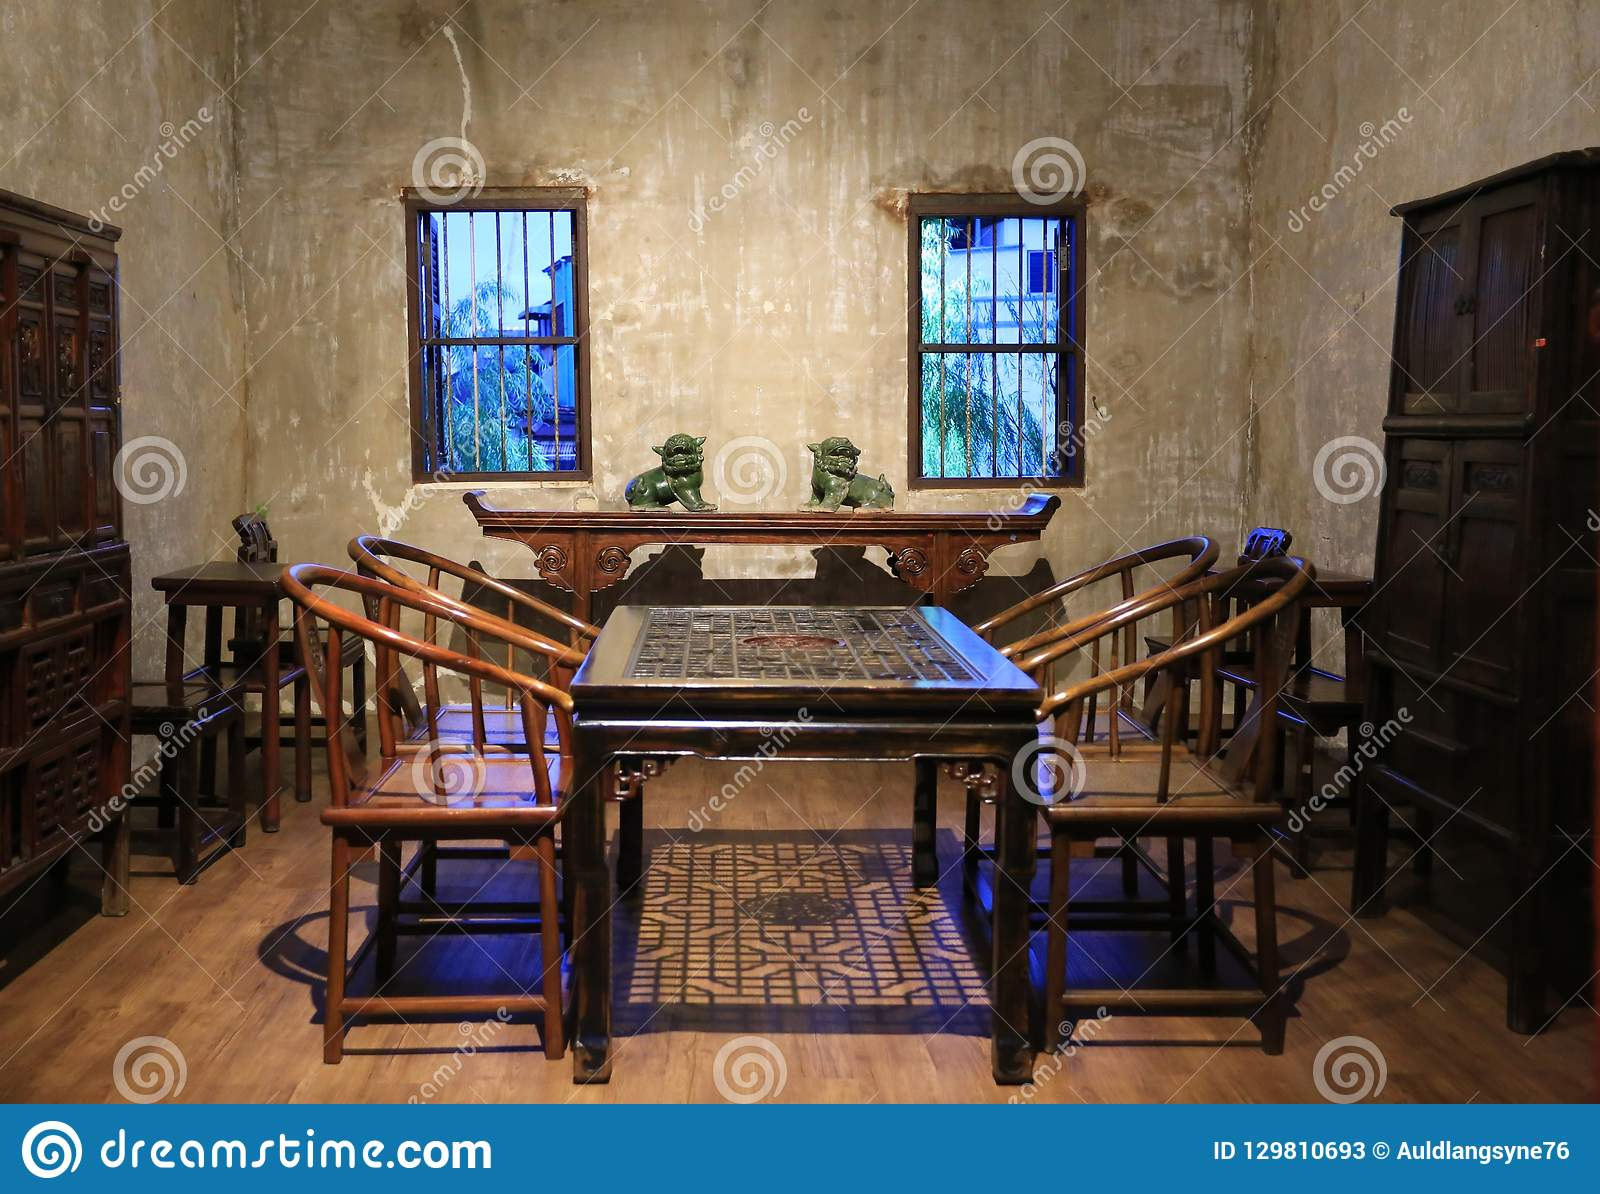 Asian dining room beautiful pictures photos Contemporary Ancient Antique Architecture Art Asia Asian Background Bangkok Beautiful Chairs Chinese Culture Decoration Design Dining Display Festive Adverts Chinese Style Vintage Wooden Dining Room Display Show In Lhong 1919